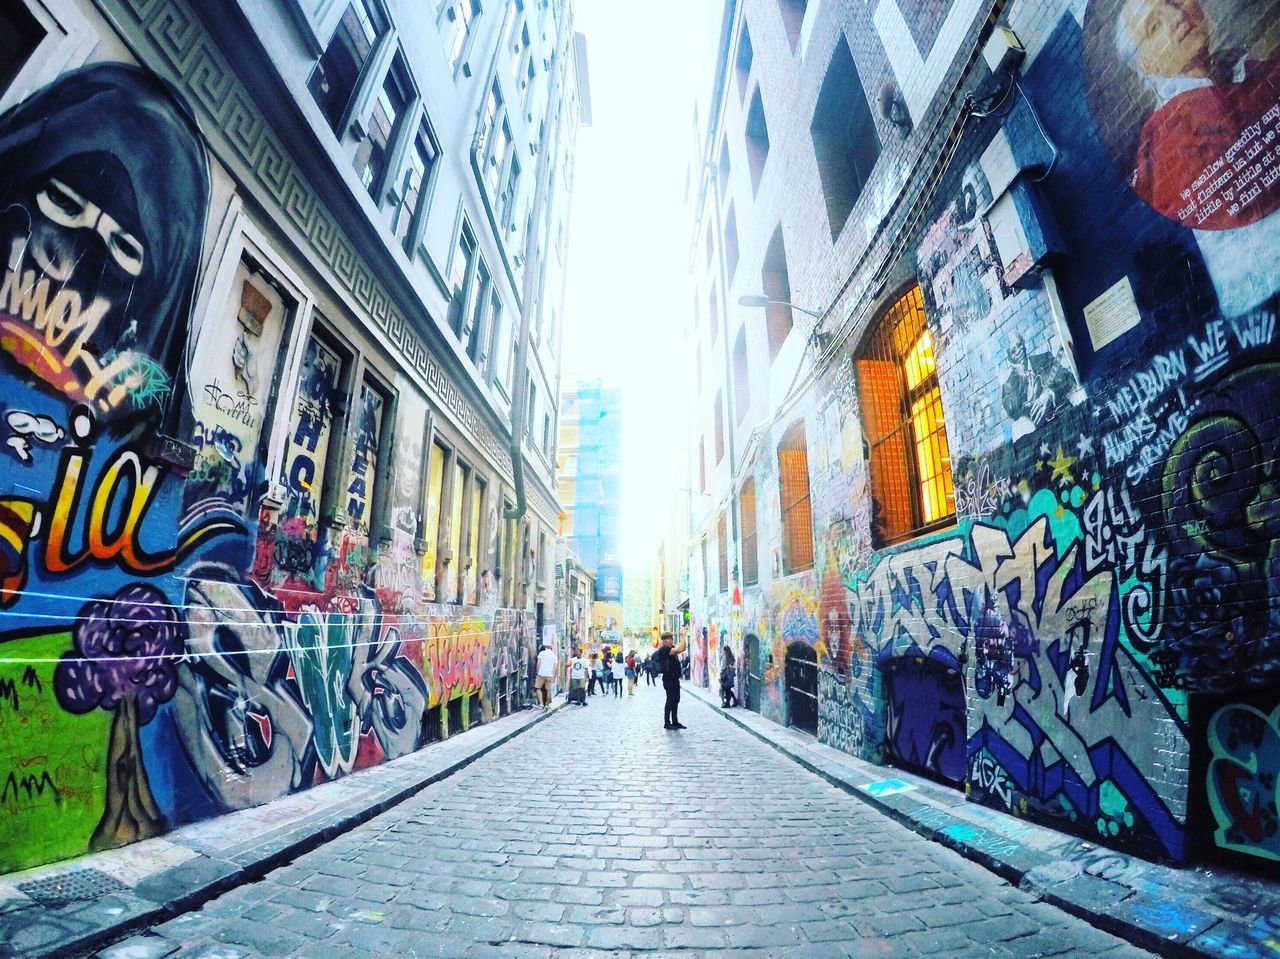 Hosier lane. Architecture Building Exterior Built Structure City Street Art City Life Day Lifestyles Outdoors Men Adult People Sky EyeEmNewHere Art Is Everywhere The Secret Spaces Solotravel Melbourne Backpacker Australia The Way Forward Scenics Walking Gopro Traveler Art Is Everywhere Break The Mold TCPM Break The Mold